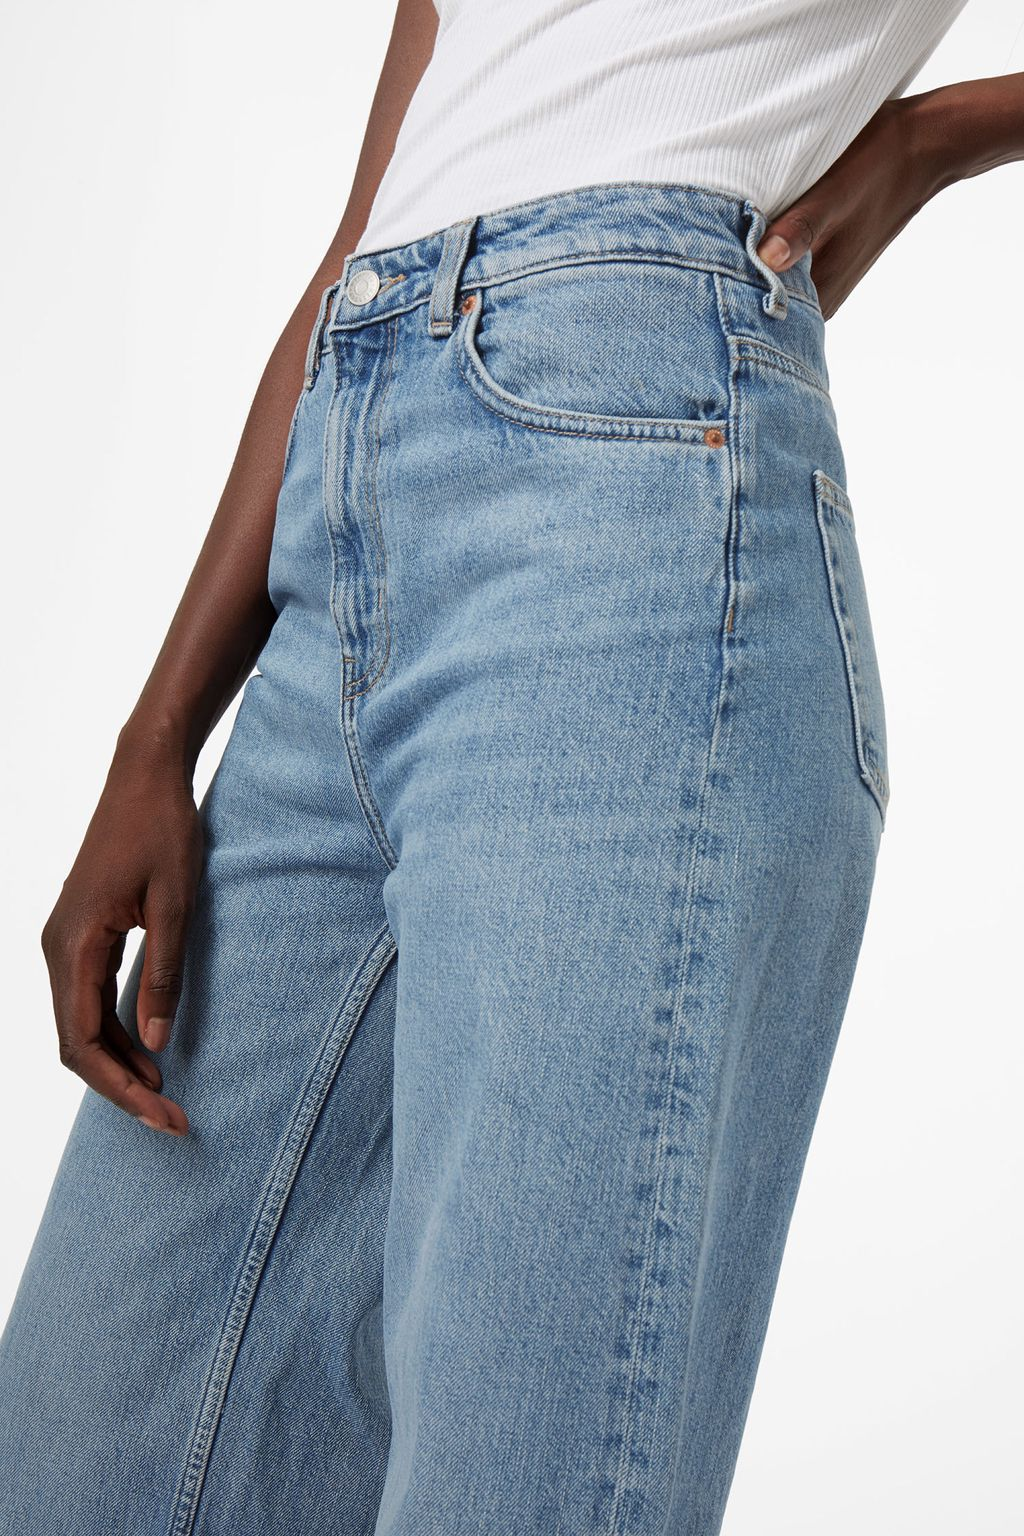 868398020029 Ace Wow Blue Jeans - Weekday